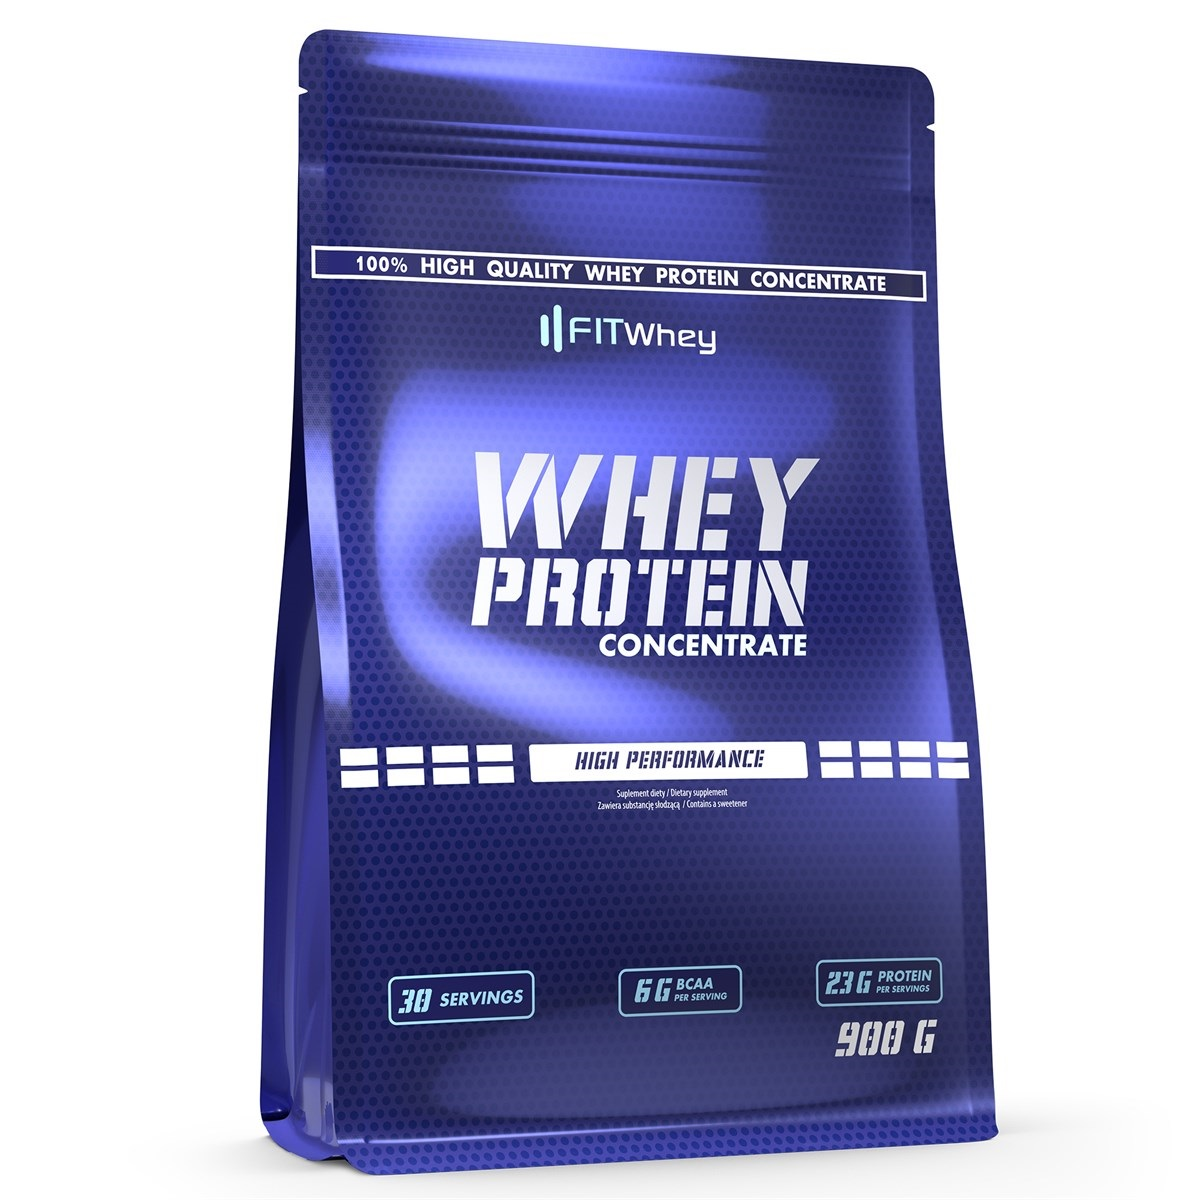 FITWhey Whey Protein Concentrate 900g (Суроватъчен протеин концентрат)